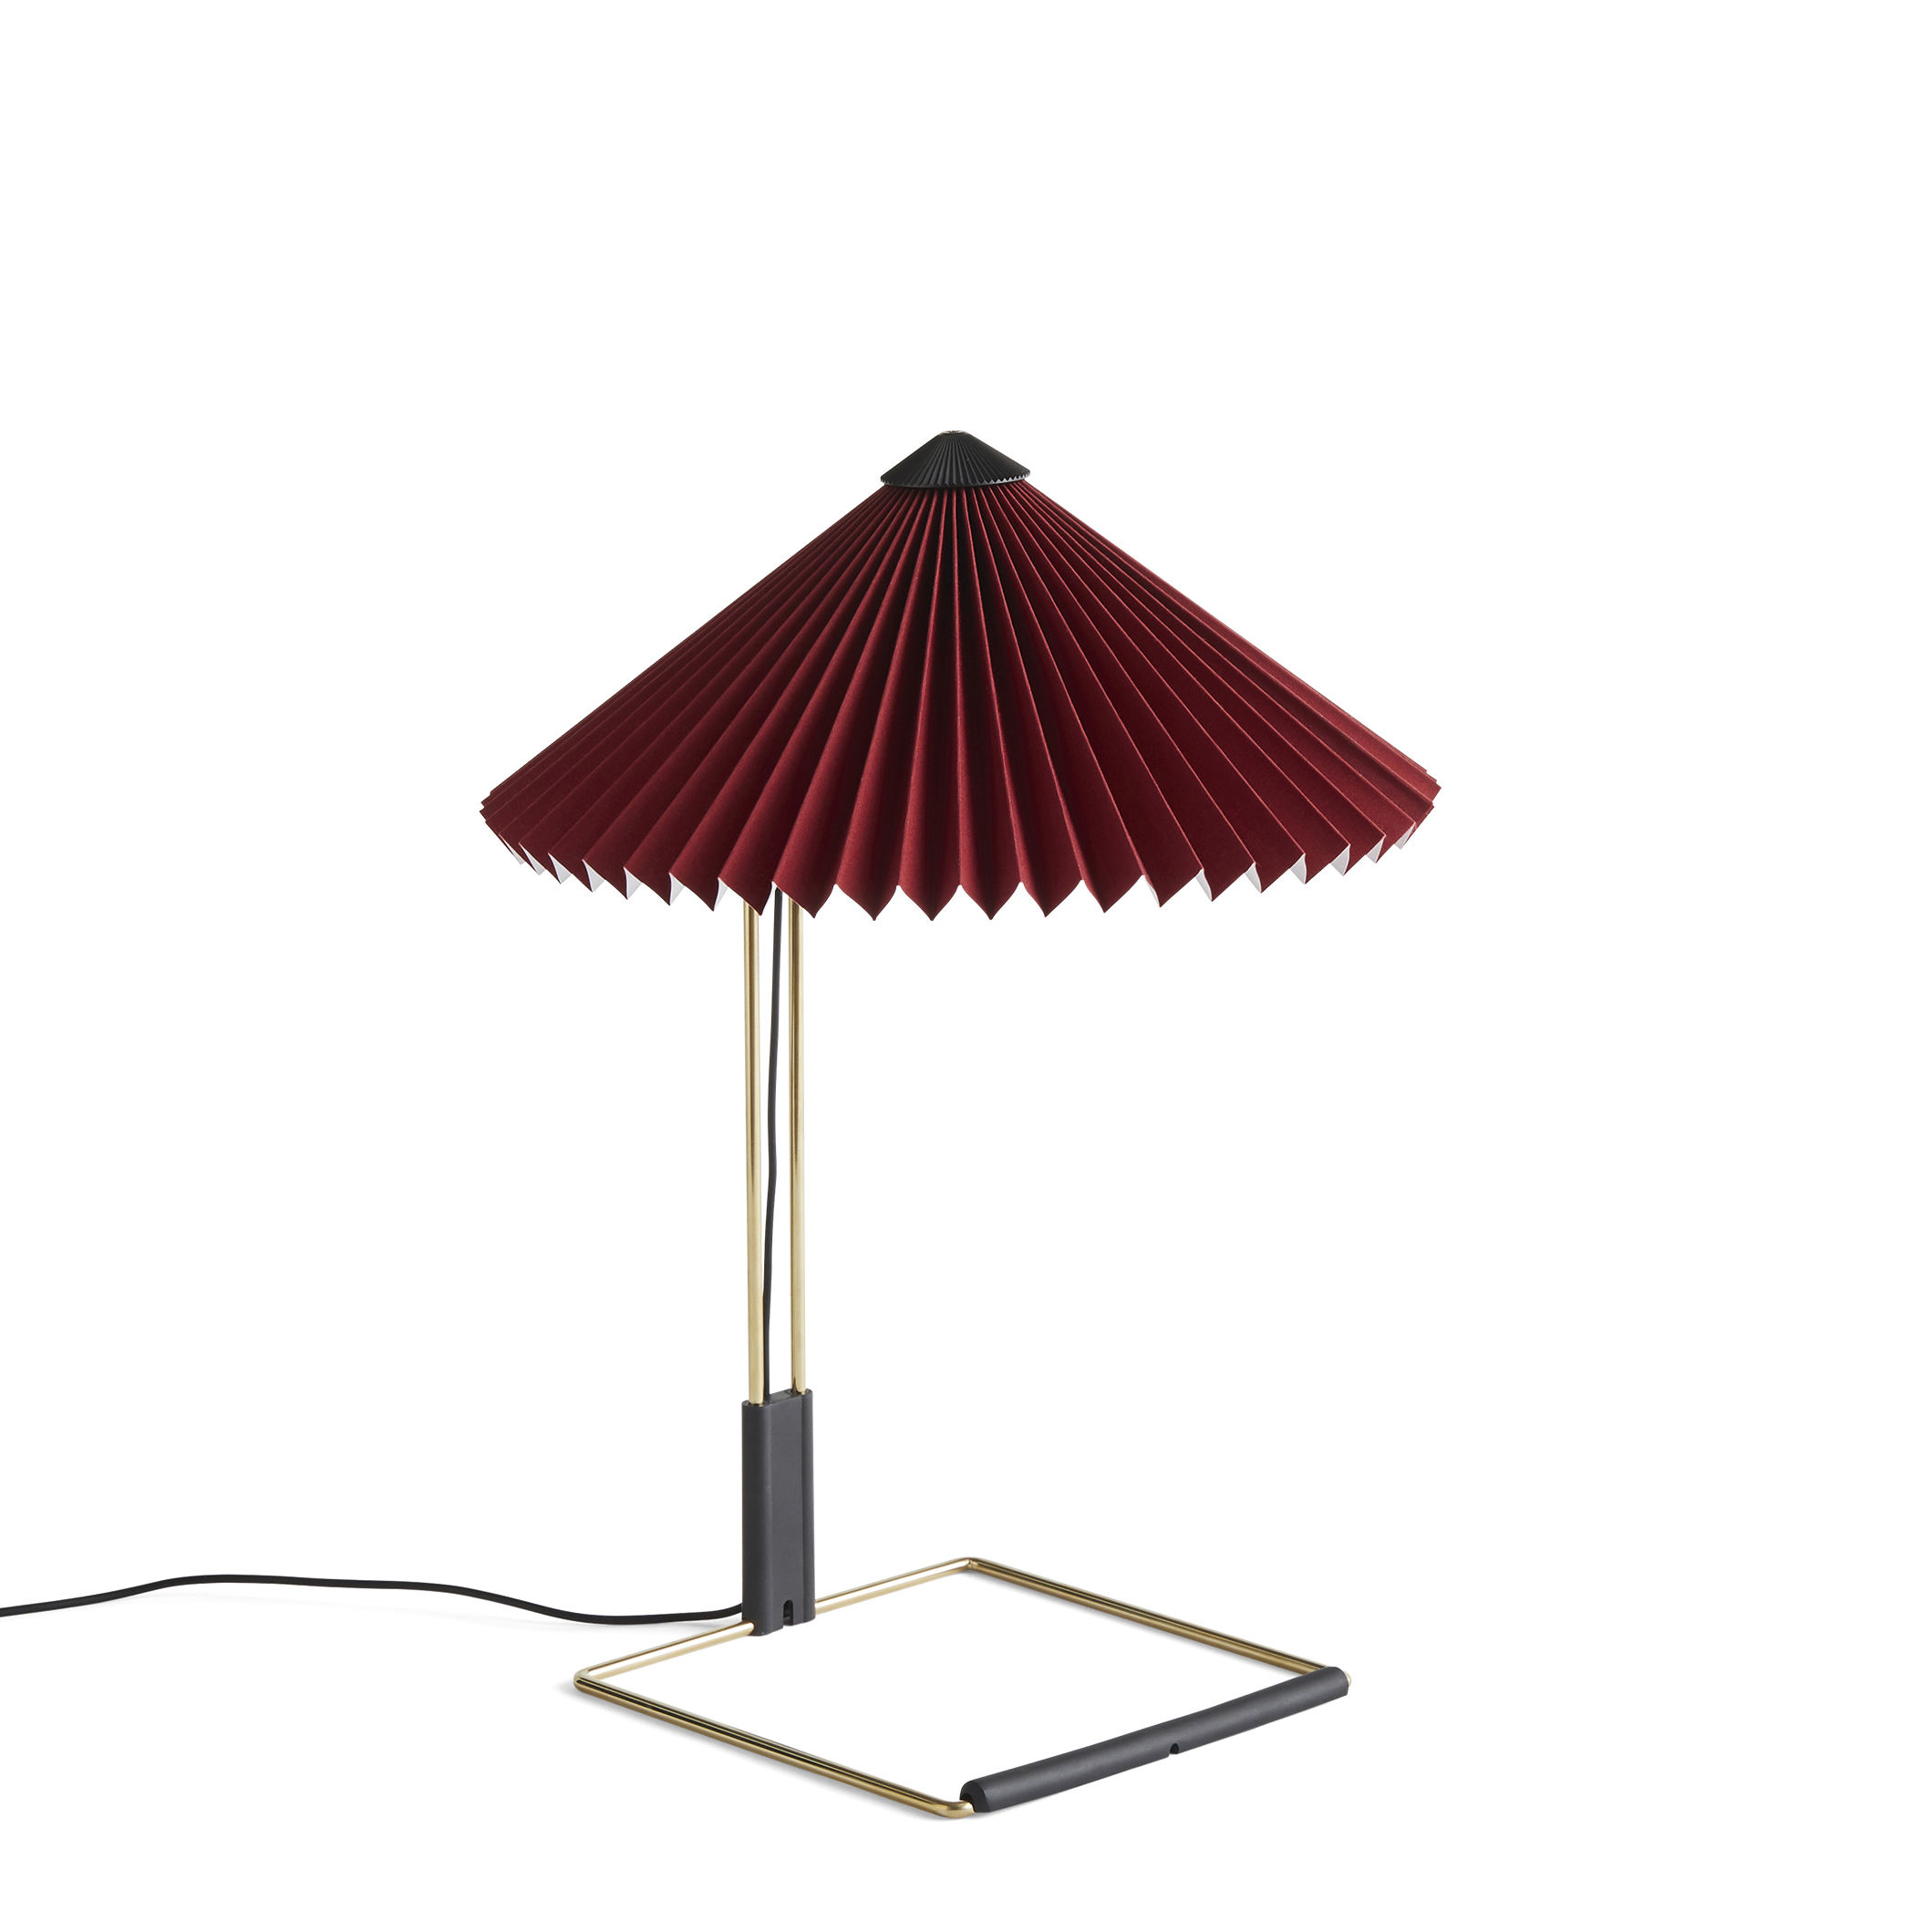 Lighting - Table Lamps - Matin Small Table lamp - / LED - H 38 cm - Fabric & metal by Hay - Oxide red / Polished brass - Acier finition laiton, Pleated cotton